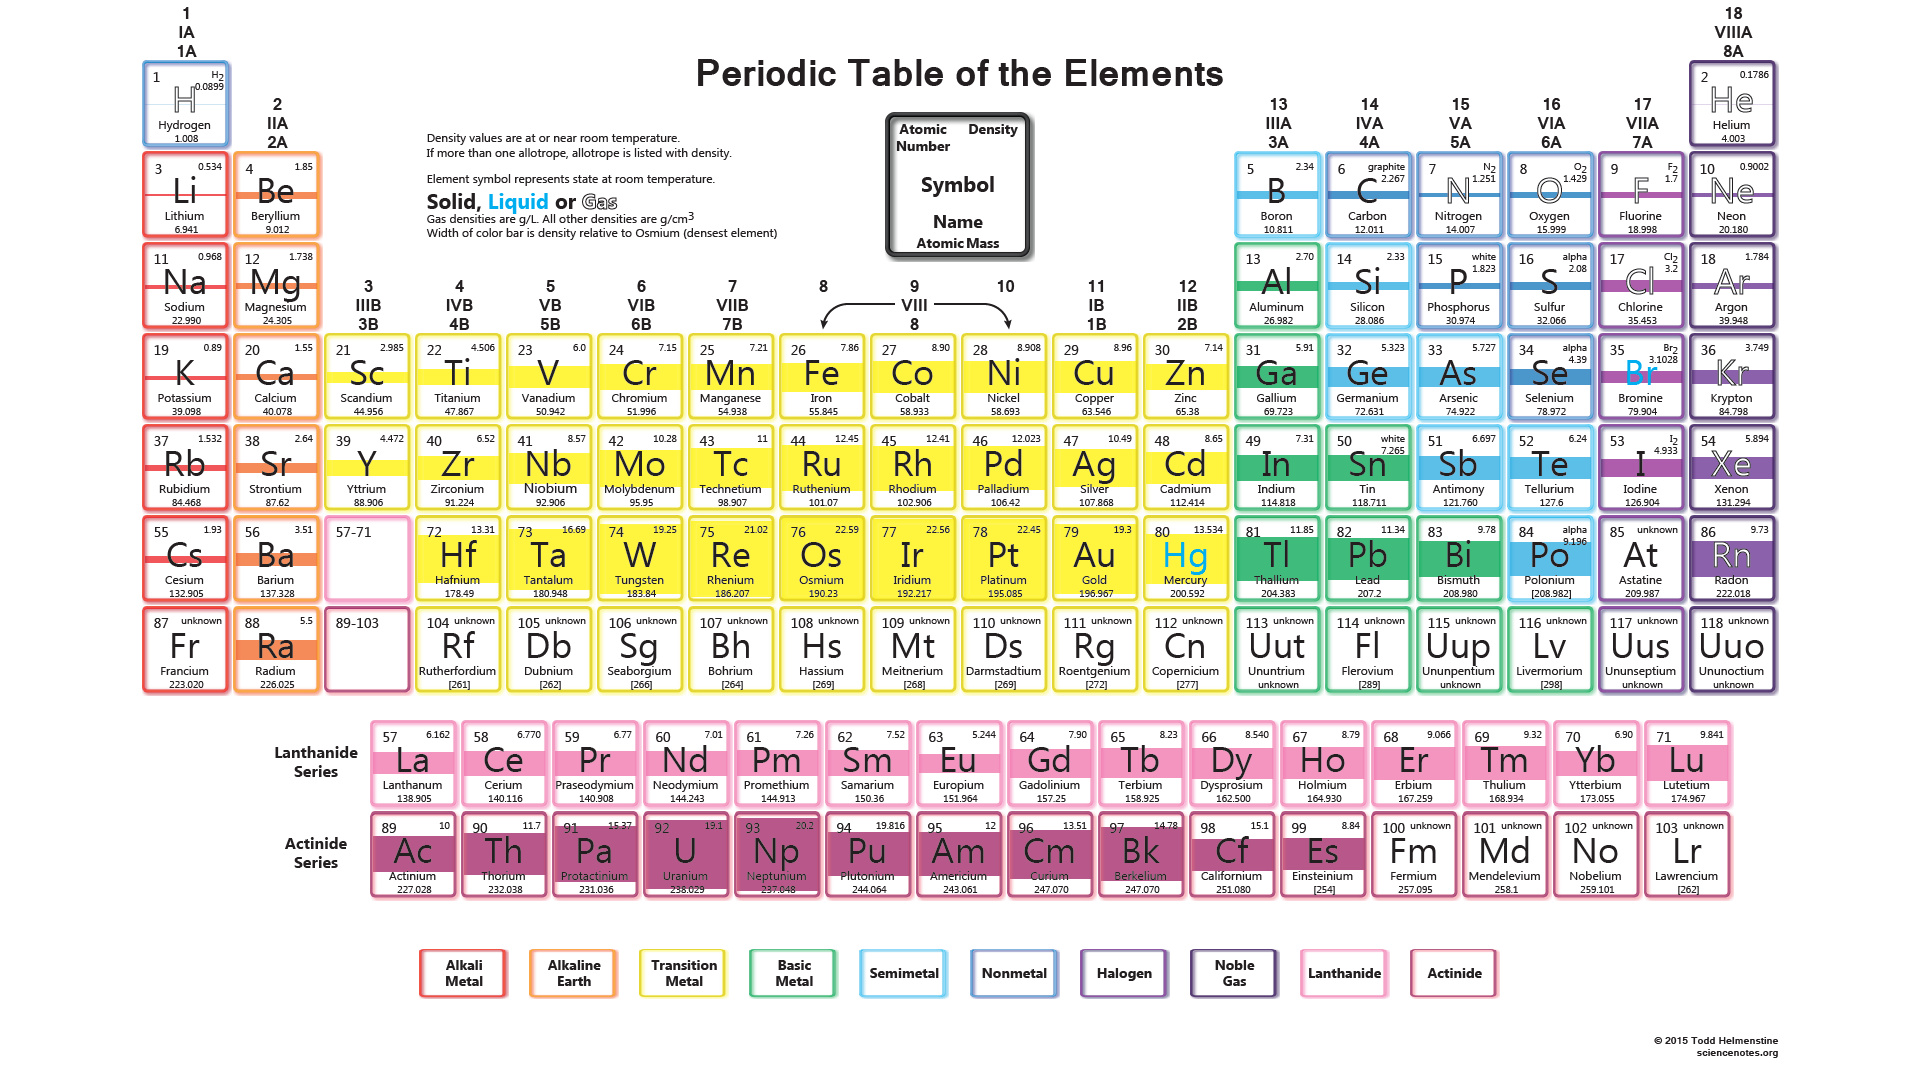 Ucsb science line i found a great periodic table click here that has the density of each element in the top right corner urtaz Image collections